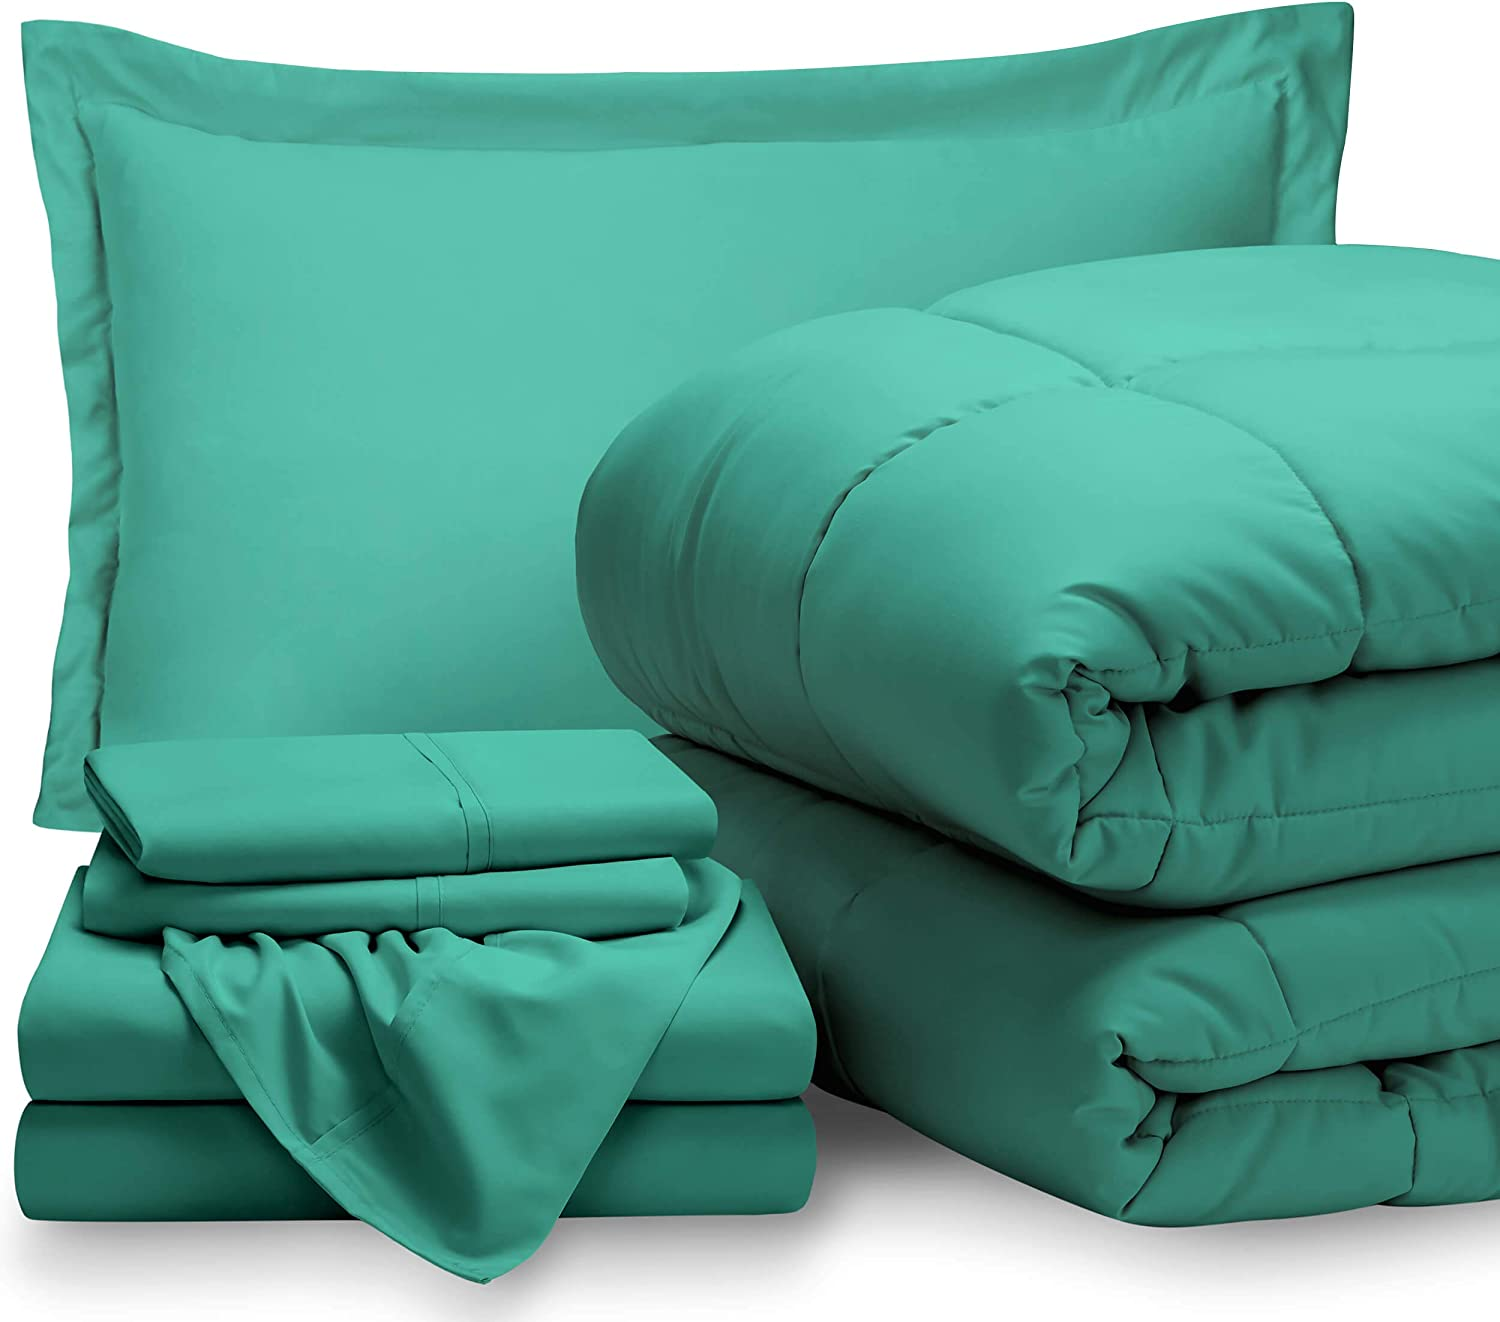 Bare Home Twin XL Sheet Set - 1800 Ultra-Soft Microfiber Bed Sheets (Twin XL, Turquoise) + Comforter Set - All Season (Twin/Twin XL, Turquoise)